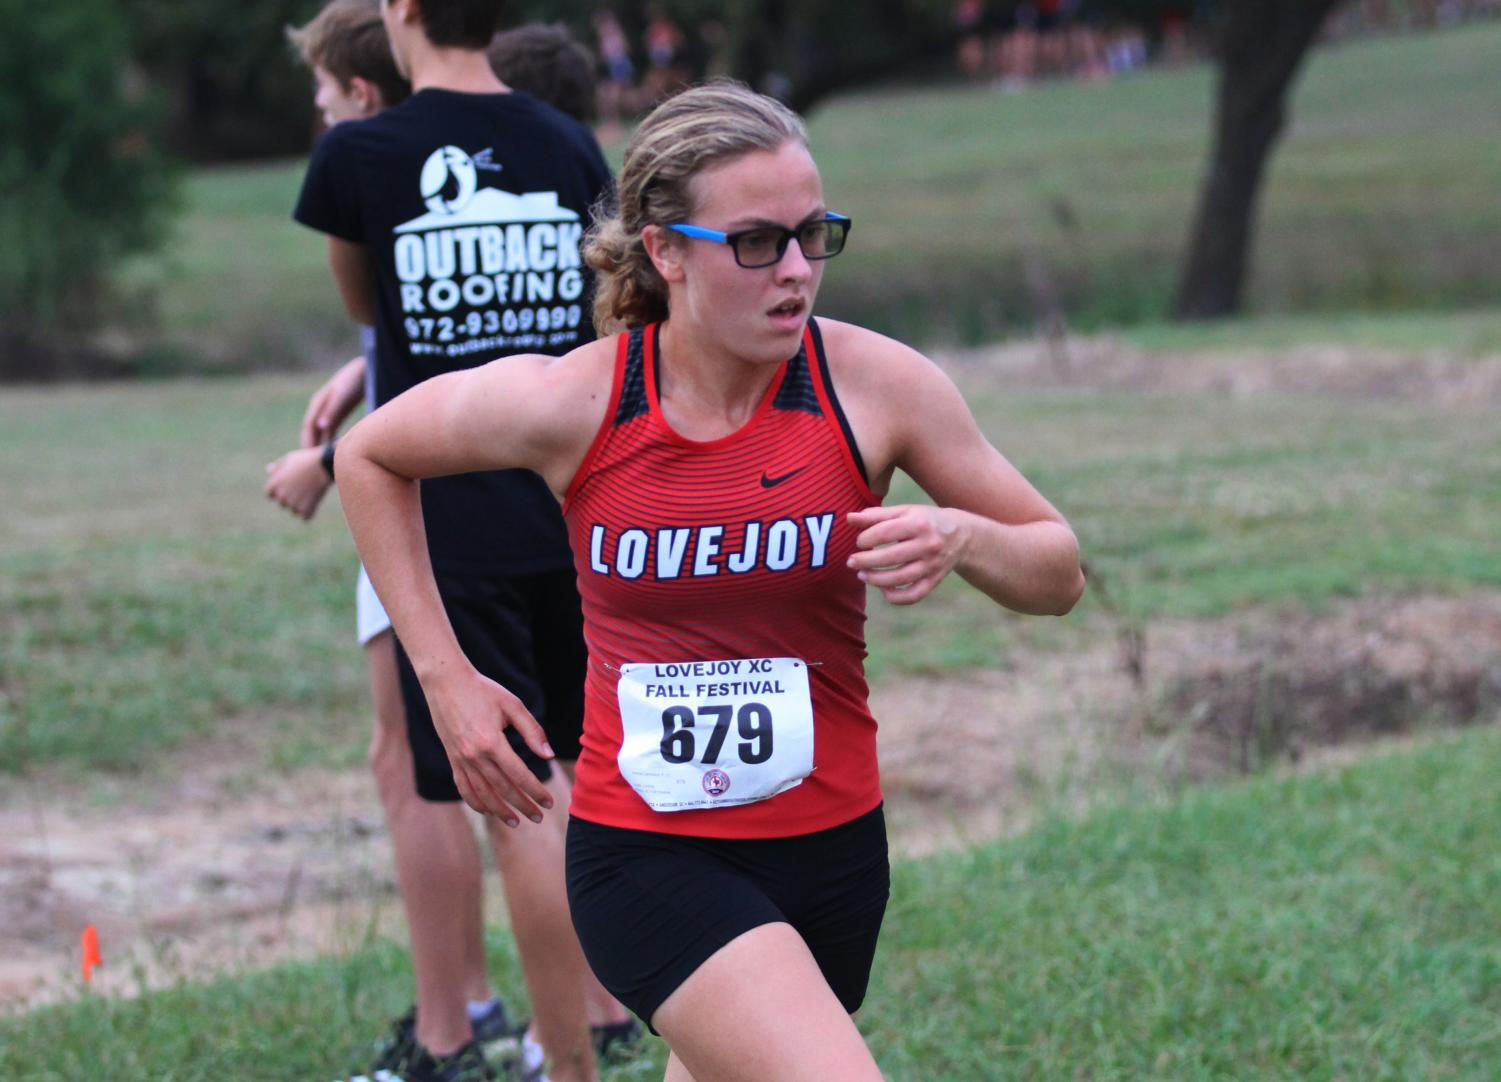 Junior Amelia Carothers runs in the Lovejoy Cross Country Fall Festival at Myers Park.